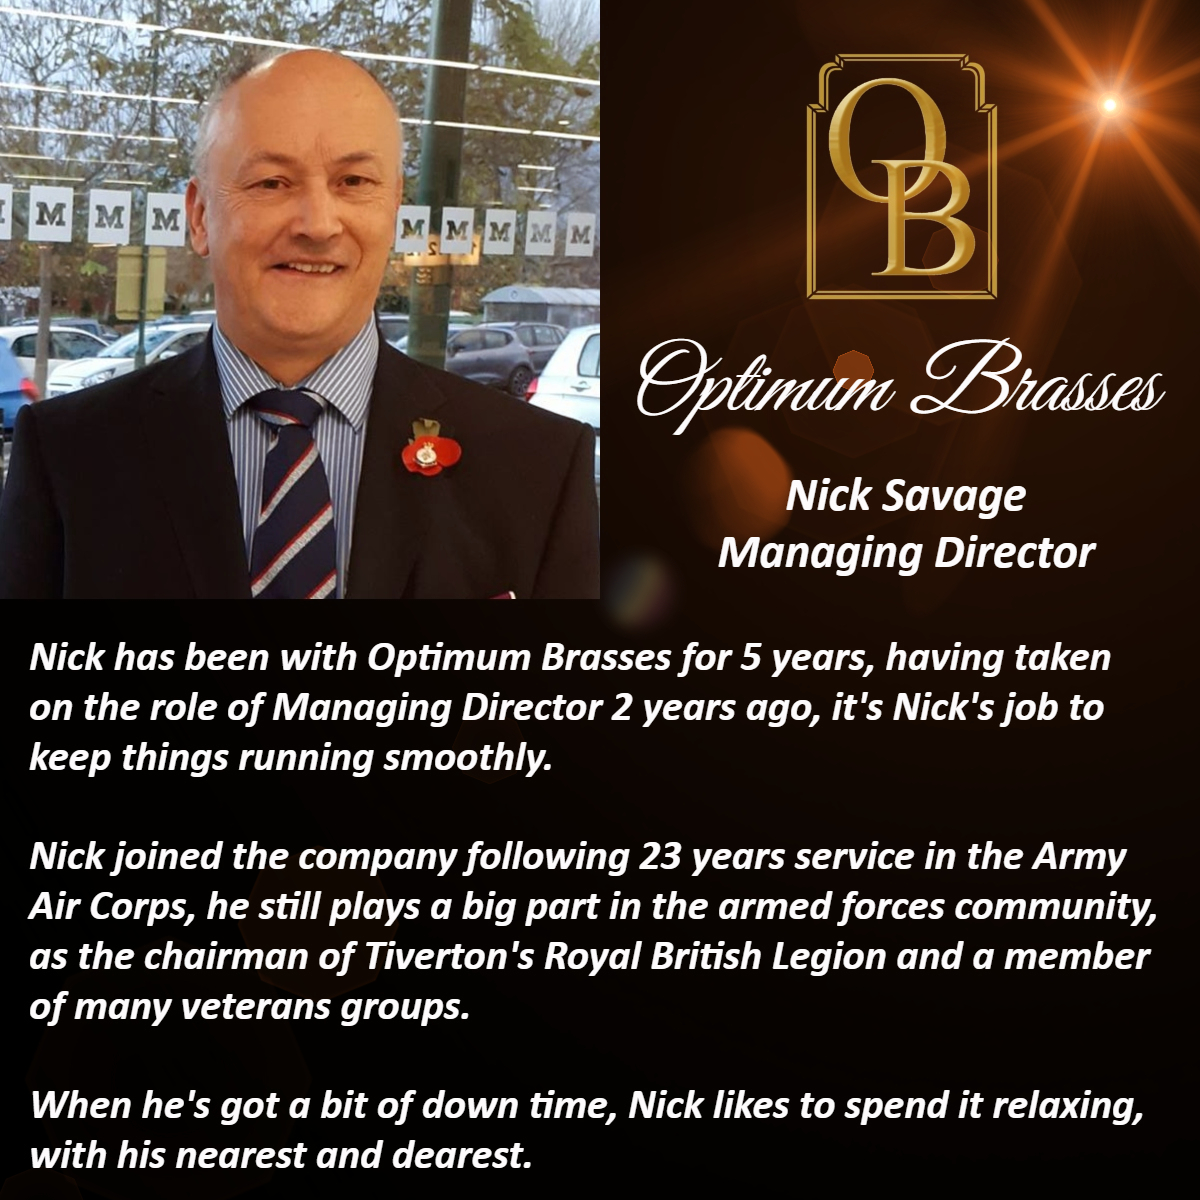 Nick has been with Optimum Brasses for 5 years, having taken on the role of Managing Director 2 years ago, it's Nick's job to keep things running smoothly.   Nick joined the company following 23 years service in the Army Air Corps, he still plays a big part in the armed forces community, as the chairman of Tiverton's Royal British Legion and a member of many veterans groups.    When he's got a bit of down time, Nick likes to spend it relaxing, with his nearest and dearest.